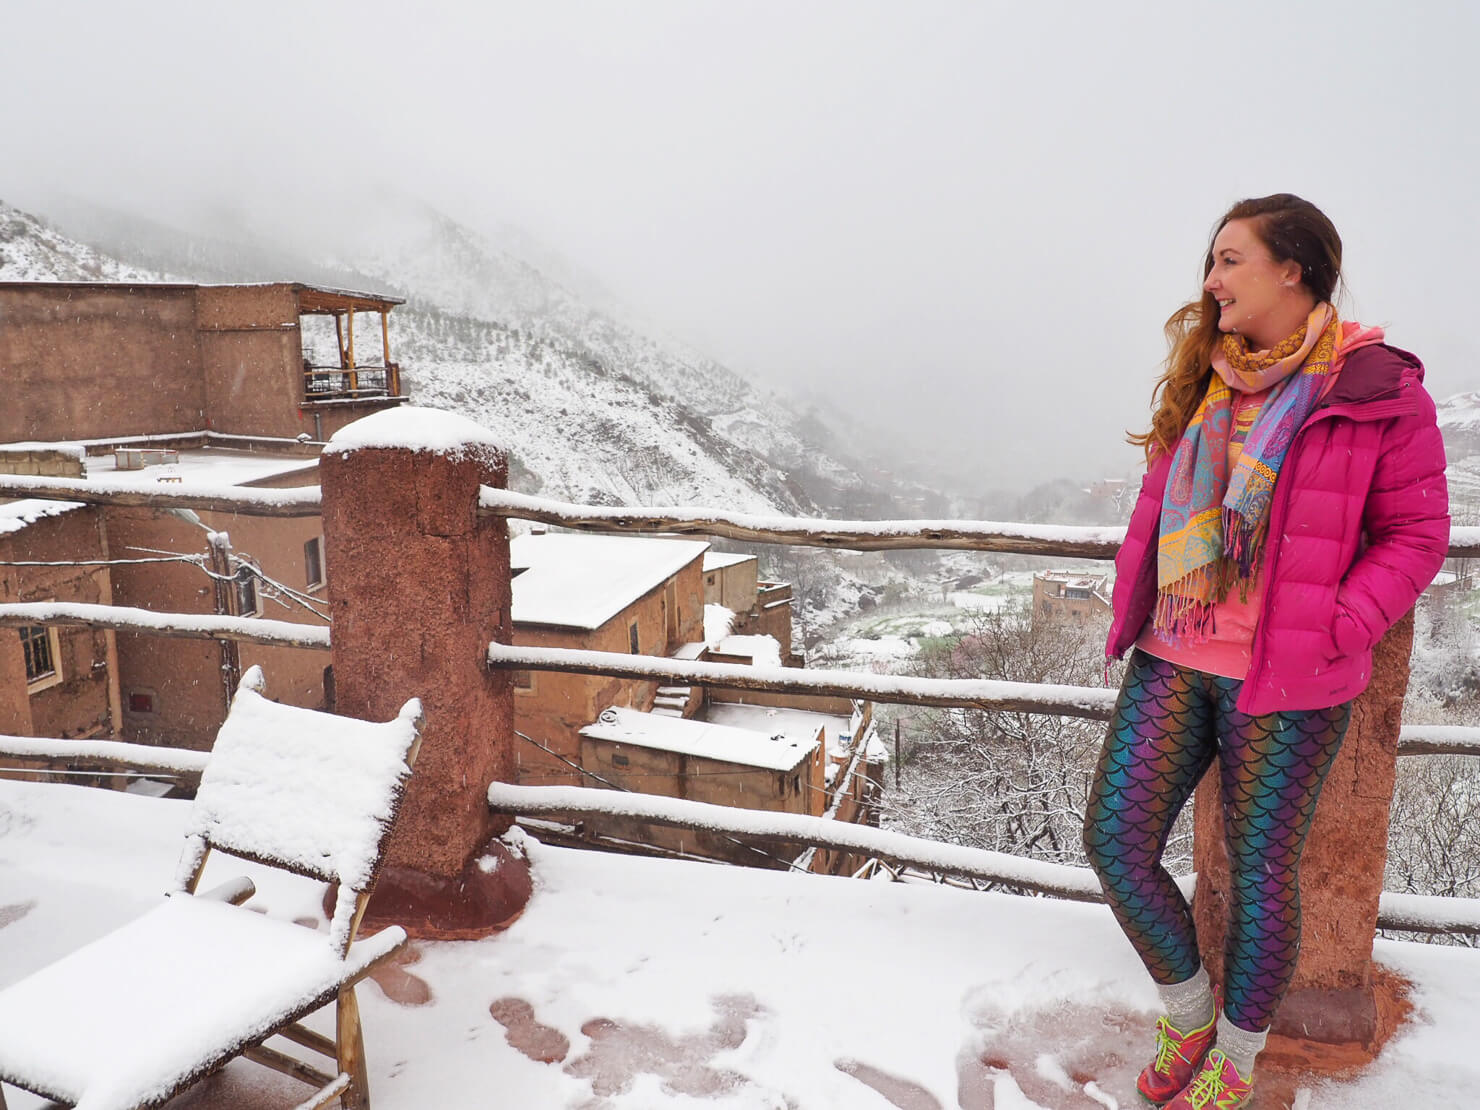 Snow in the Atlas Mountains, Morocco